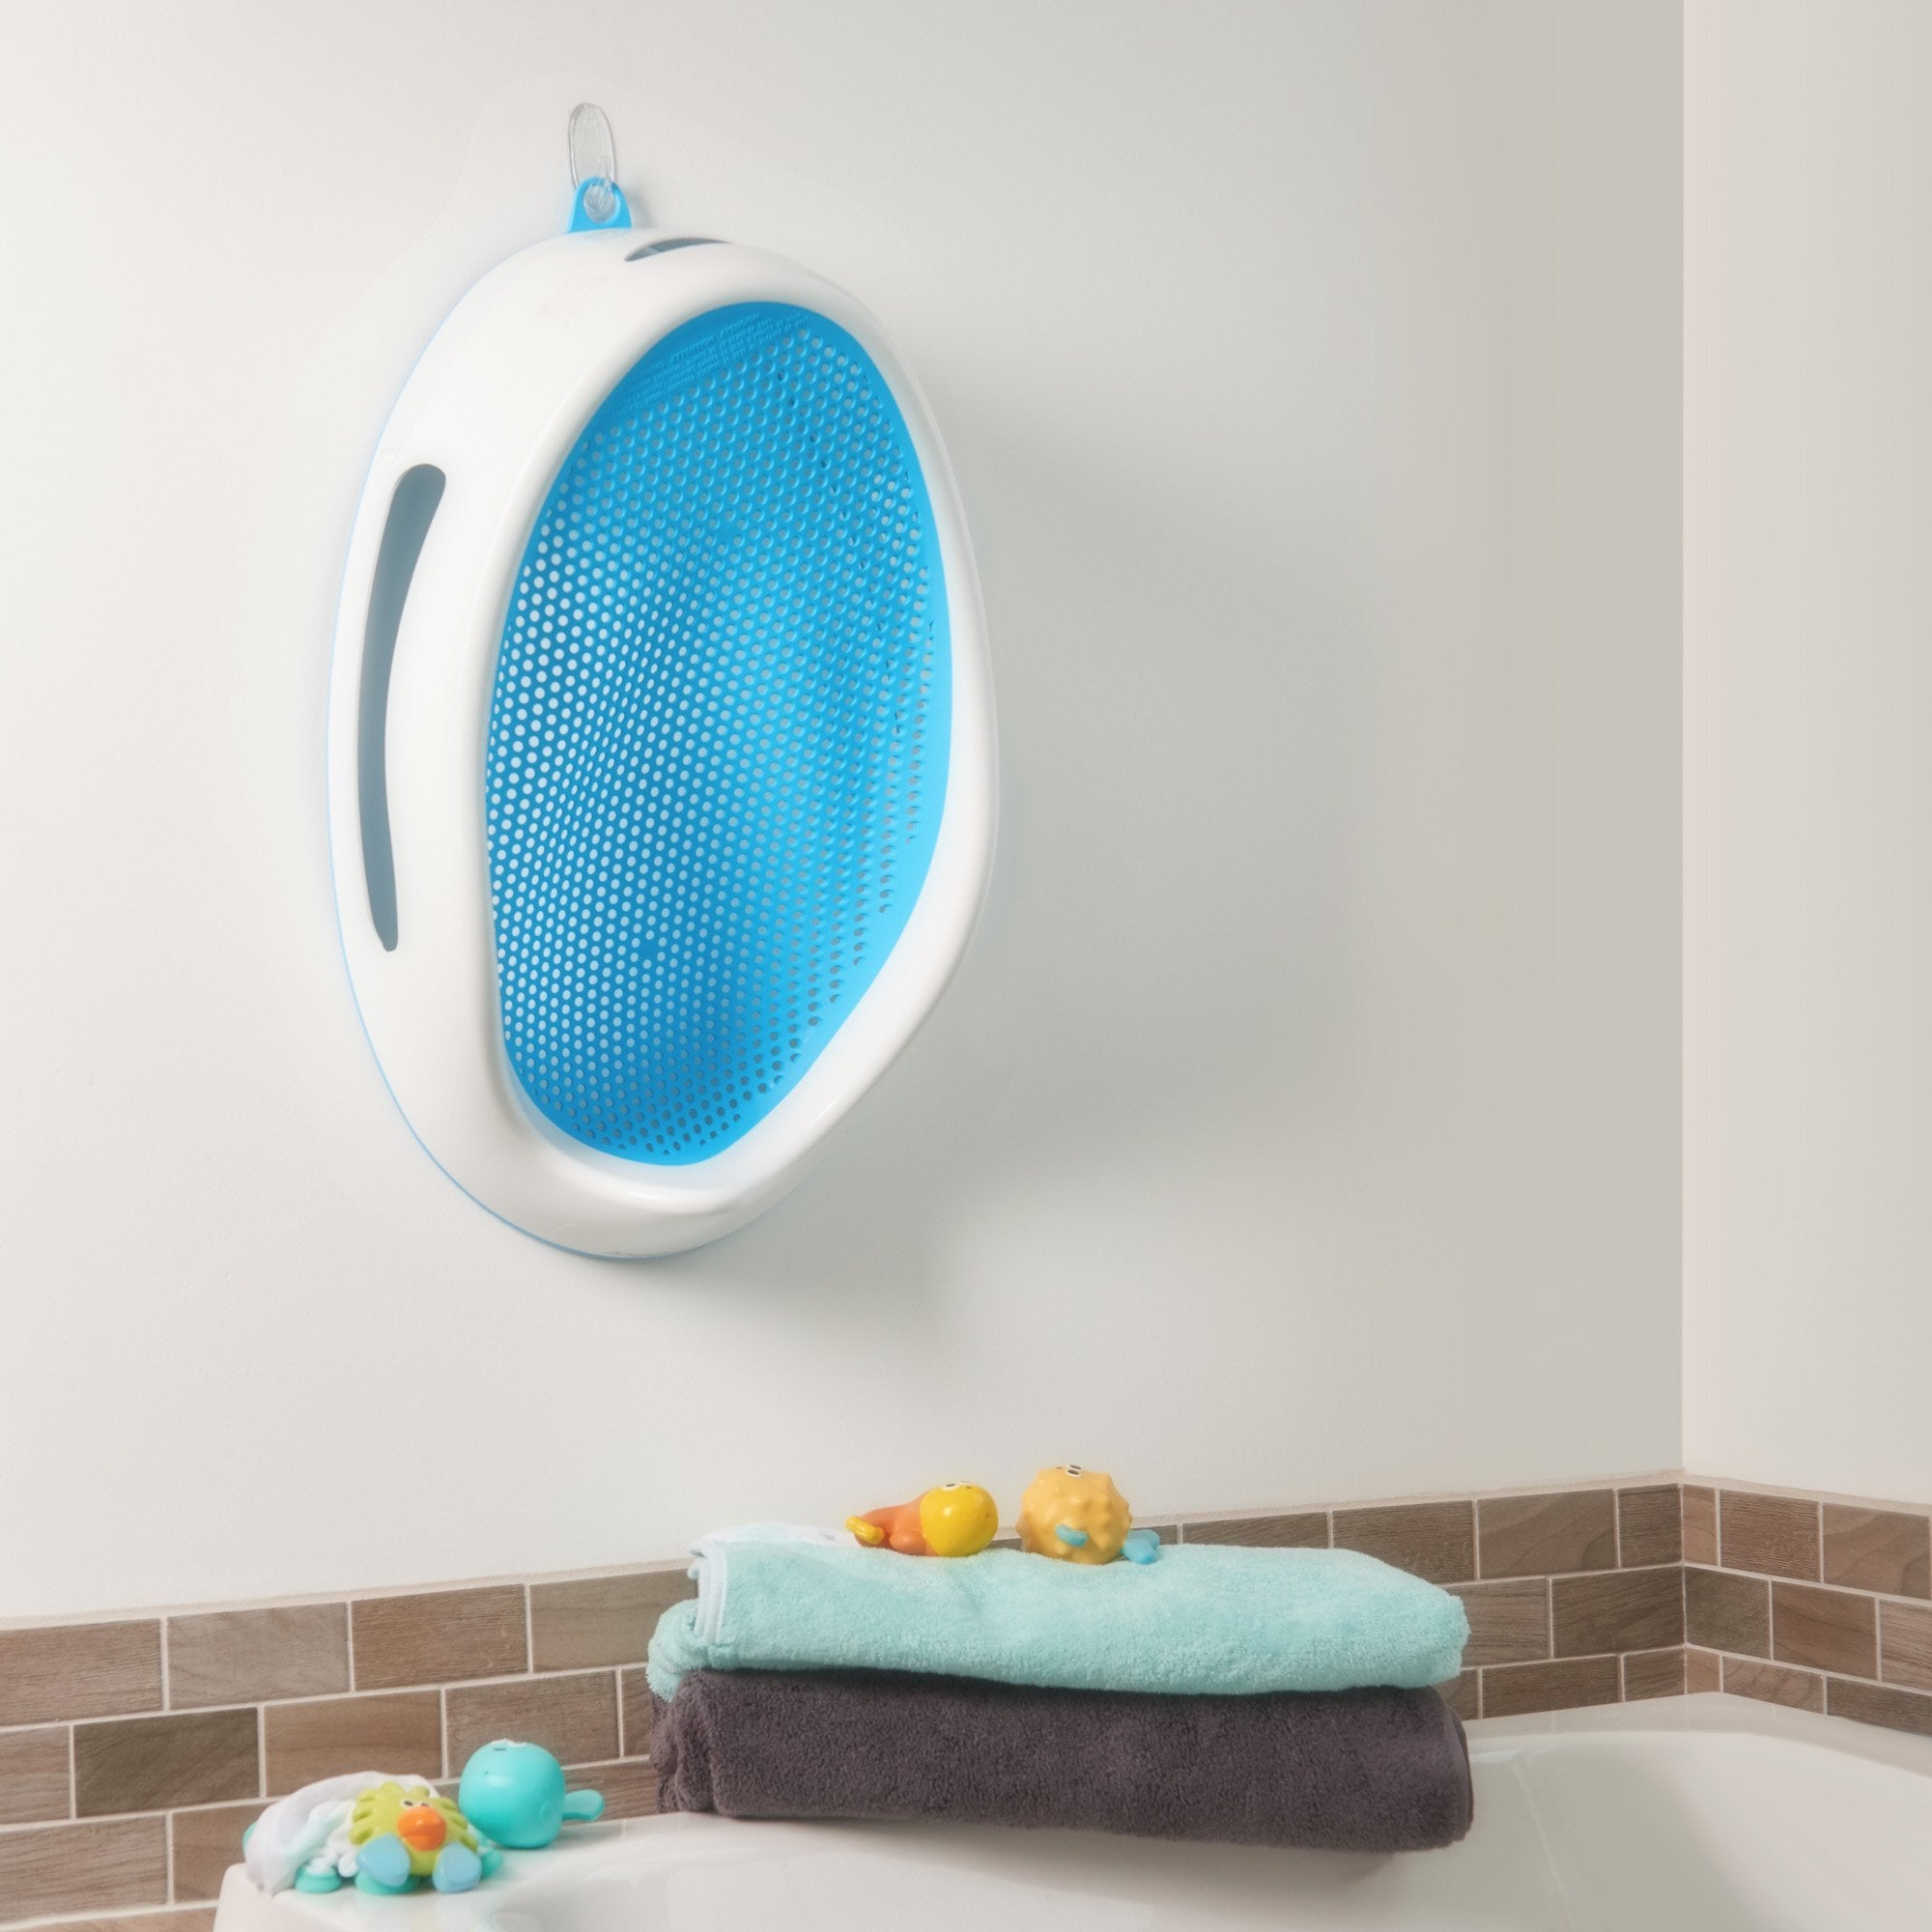 Baby Bath Support - Ergonomic Design With Soft Mesh